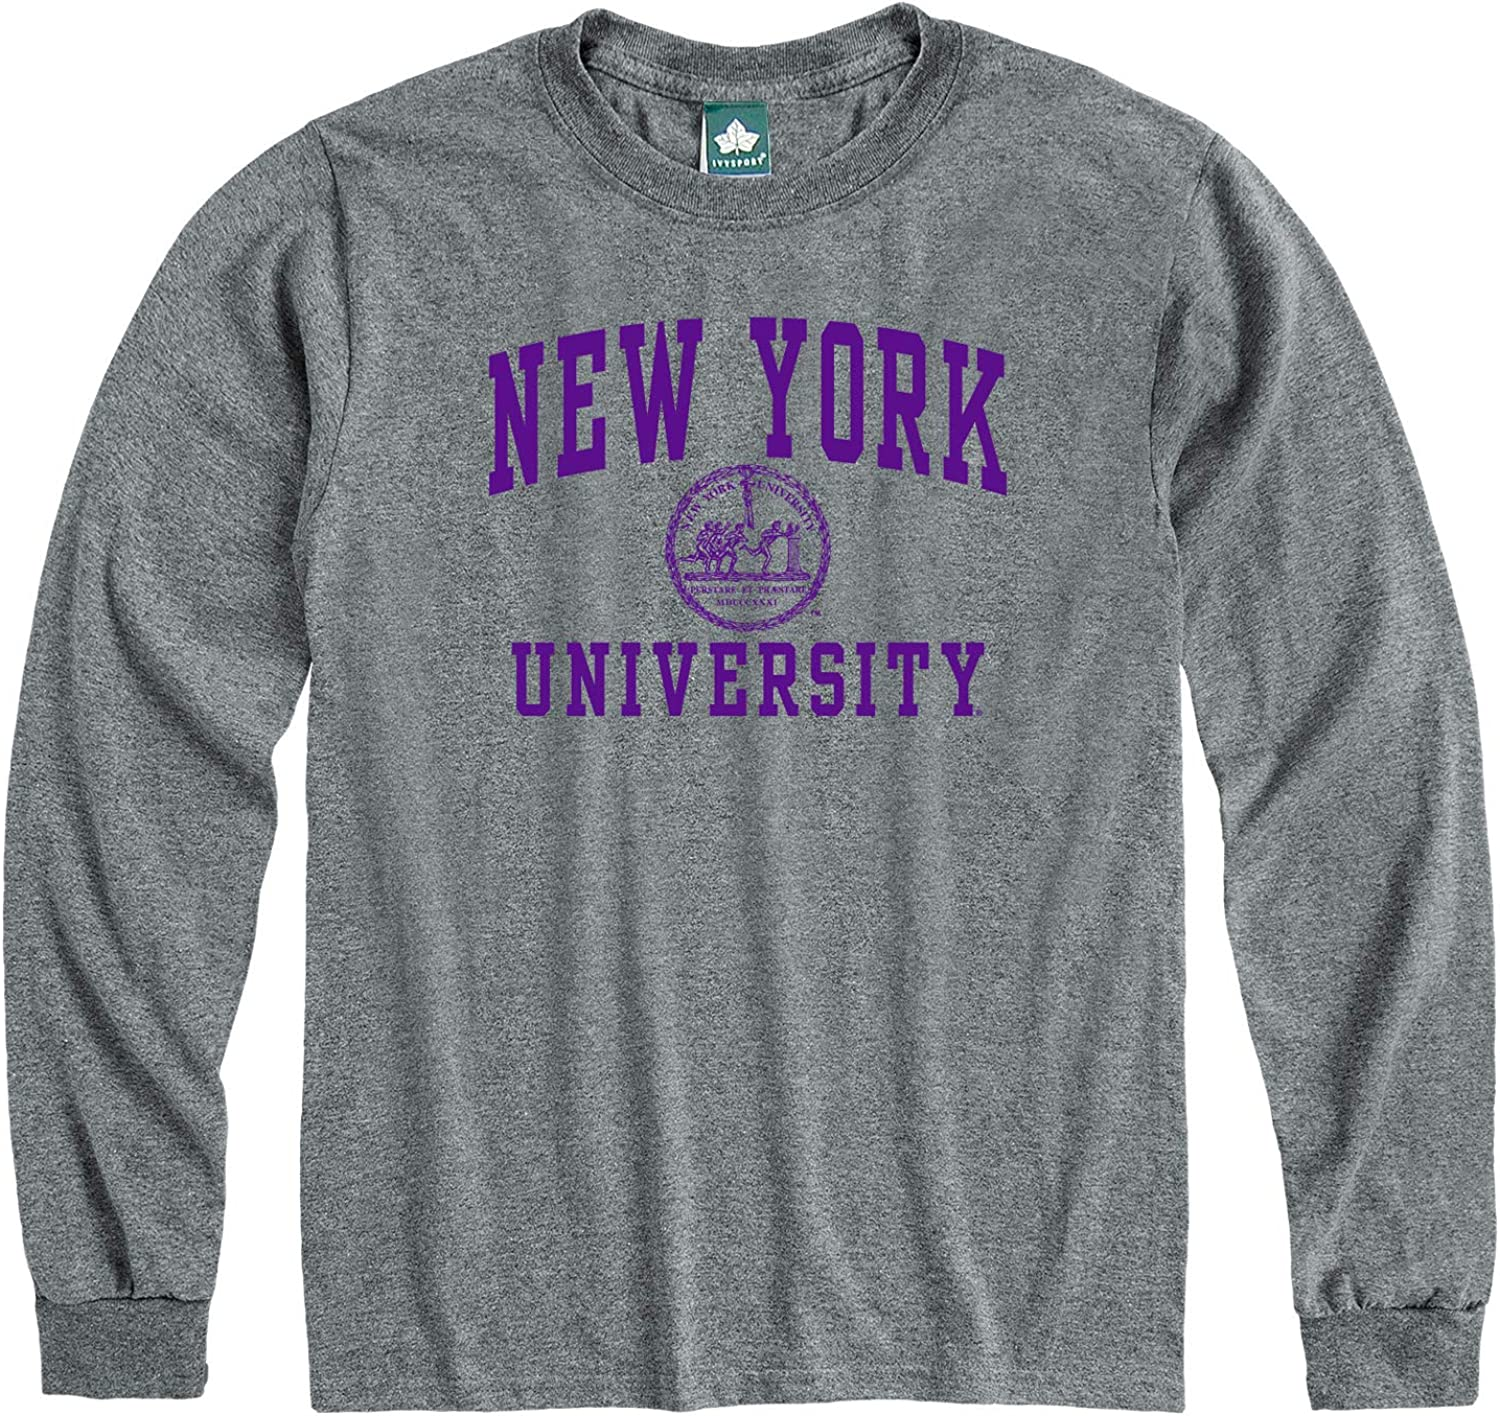 Heritage Logo Grey Ivysport Long Sleeve Cotton Adult T-Shirt NCAA Colleges and Universities